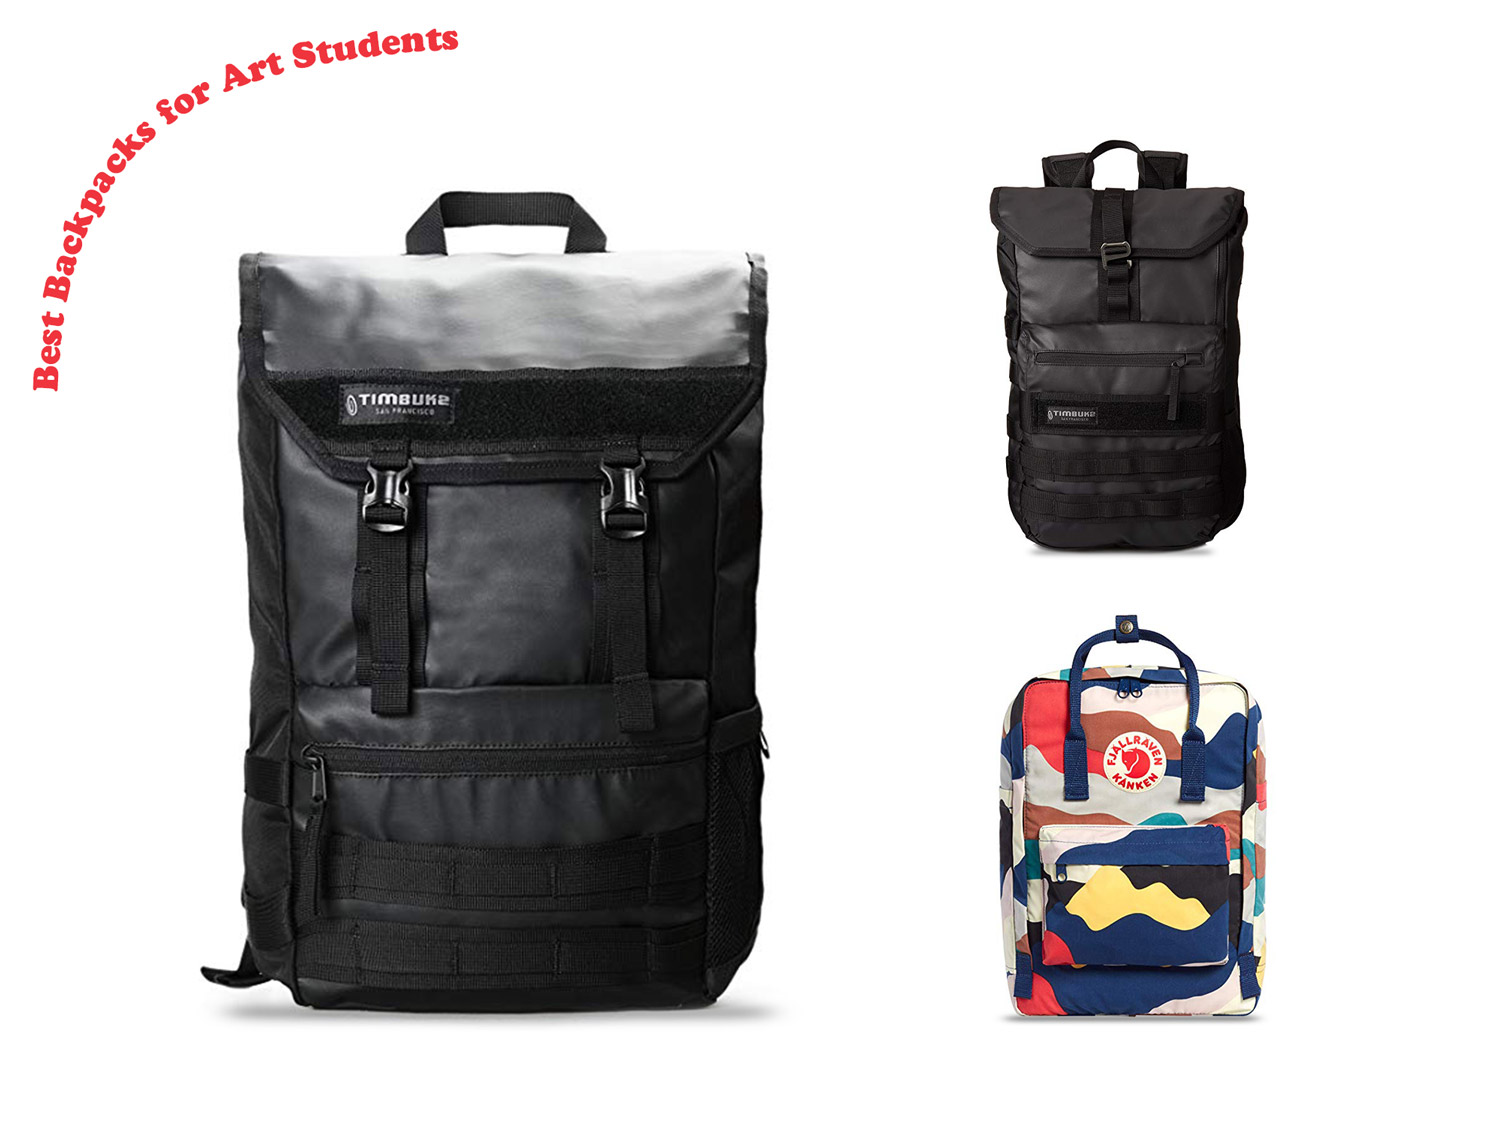 The Best Backpacks for Art Students